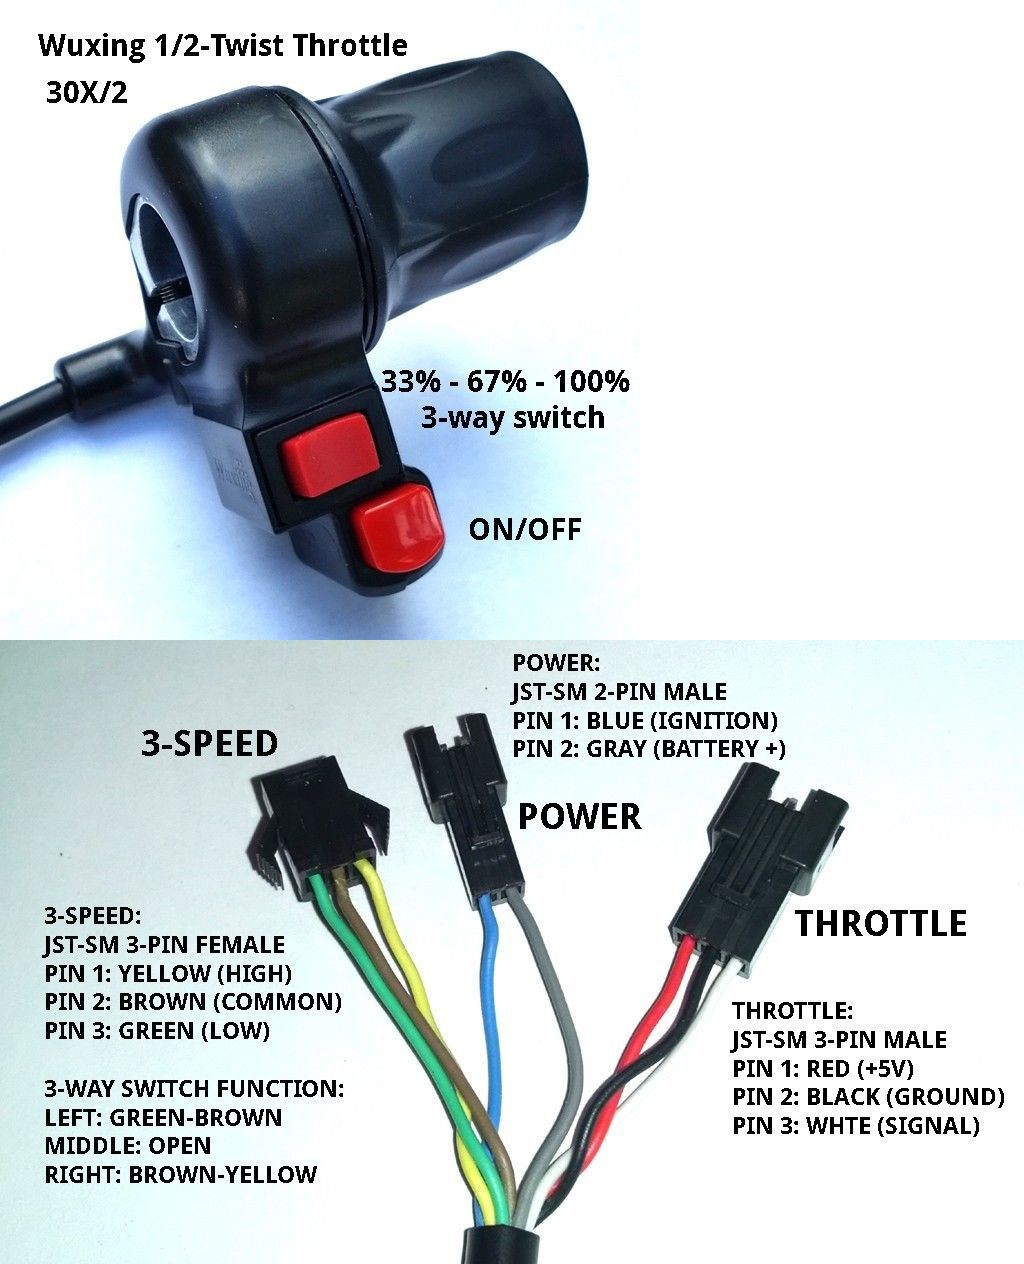 595eda5fcbe Electric Bicycle Components 177814: Ebike Throttle - 1 2-Twist With  Integrated Power Button And 3-Speed Switch -> BUY IT NOW ONLY: $29.95 on  #eBay #electric ...